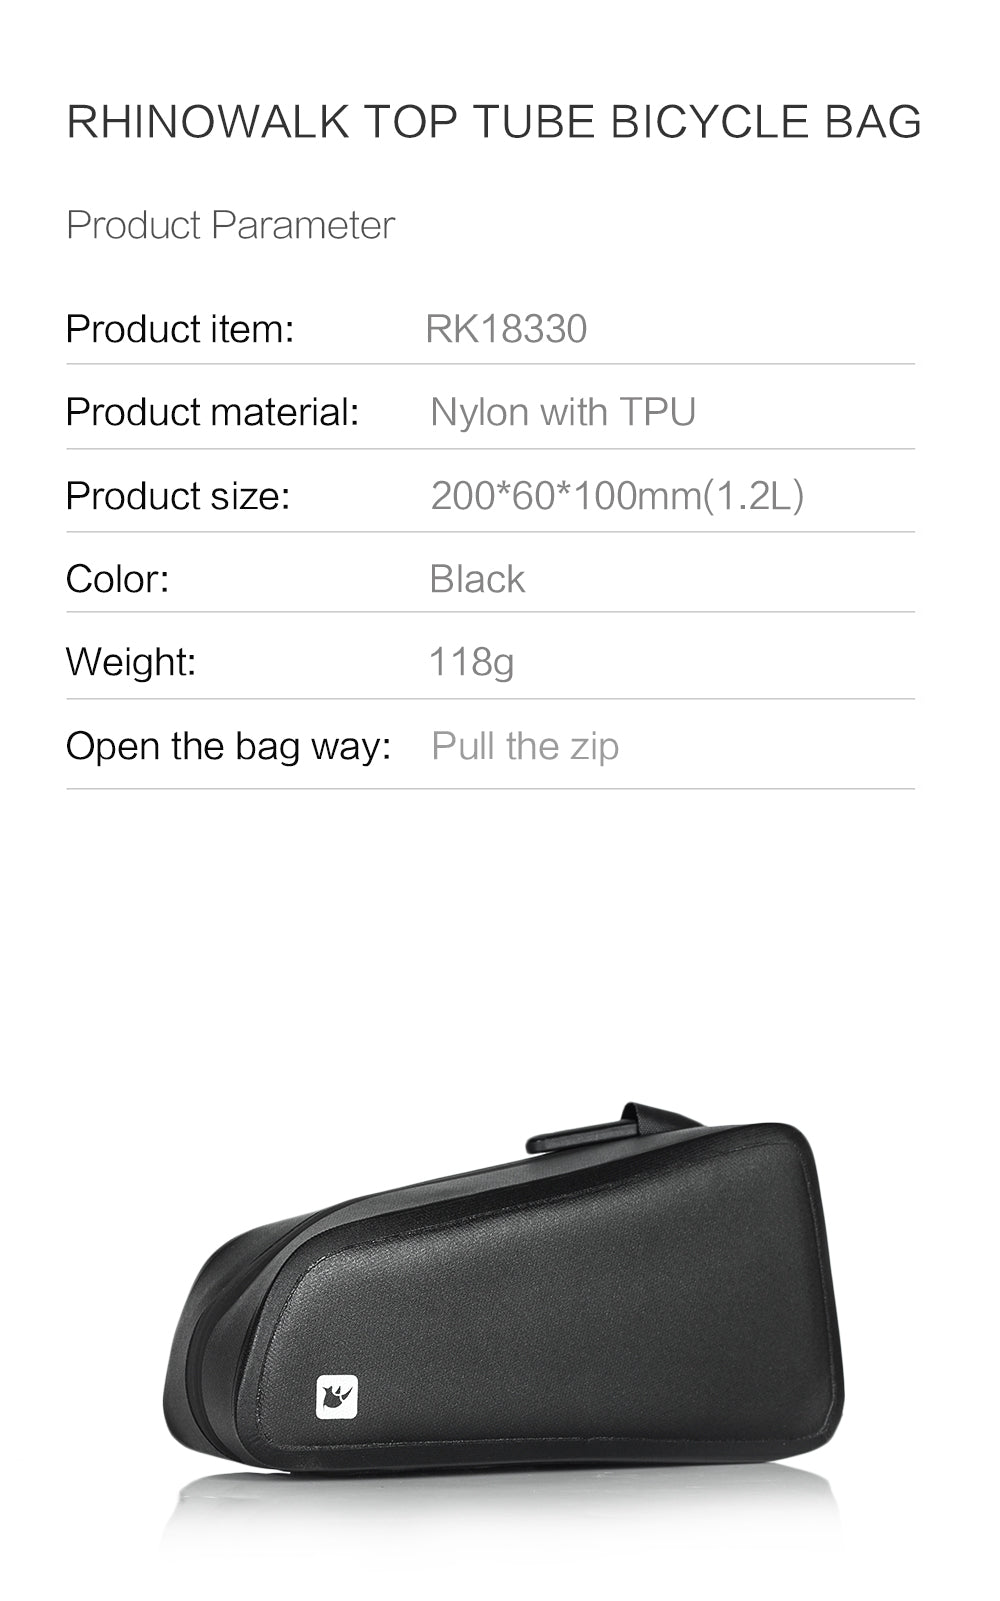 Rhinowalk Bike Bag 1.2L Bike Top Tube Bag Bike Frame Bag Waterproof and Stable Bicycle Frame Bag Bicycle Bag Professional Cycling Accessories